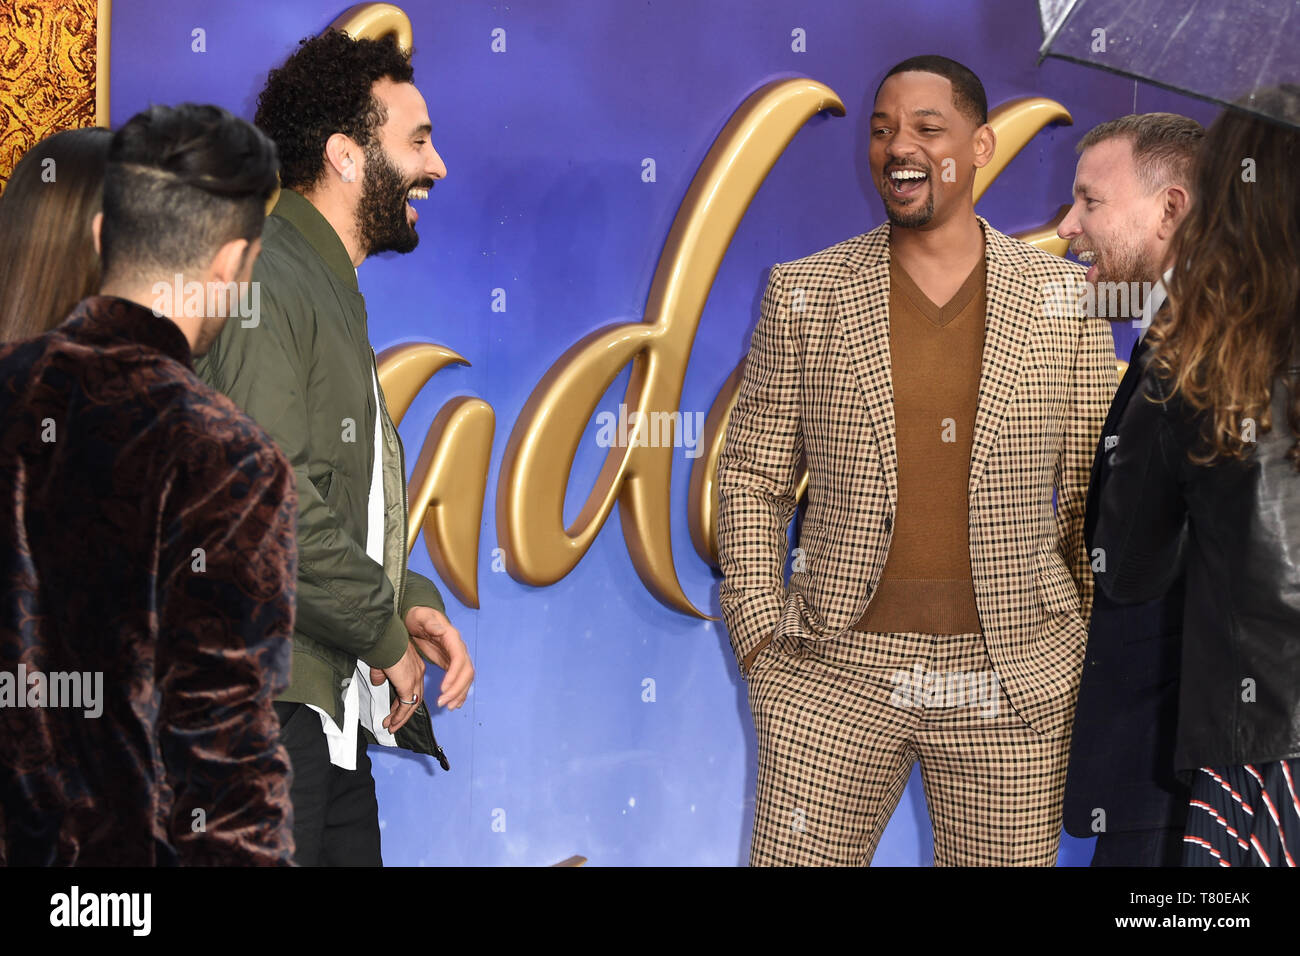 """London, UK. 09th May, 2019. LONDON, UK. May 09, 2019: Marwan Kenzari & Will Smith at the """"Aladdin"""" premiere at the Odeon Luxe, Leicester Square, London. Picture: Steve Vas/Featureflash Credit: Paul Smith/Alamy Live News Stock Photo"""